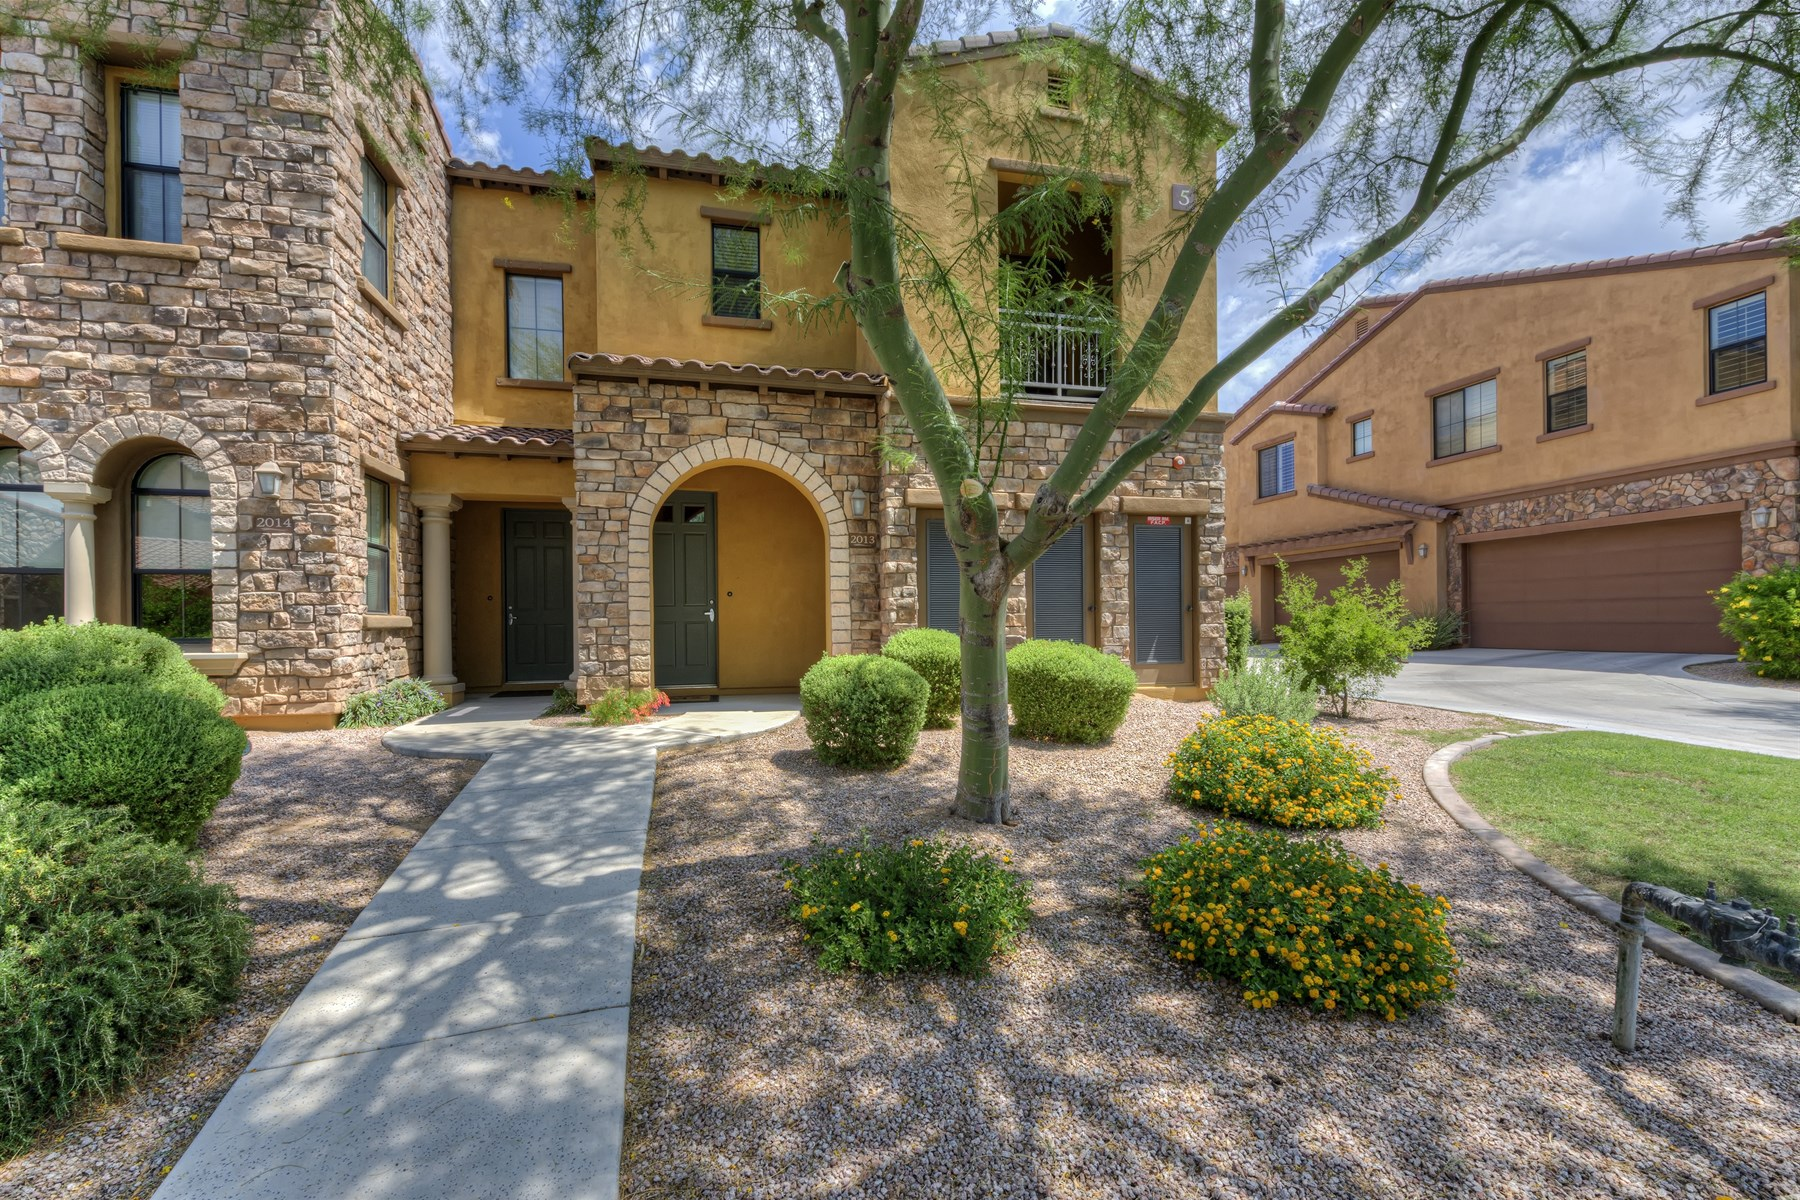 Townhouse for Sale at Enjoy truly breathtaking, panoramic views from this lovely well-cared for home 20750 N 87th St 2013 Scottsdale, Arizona 85255 United States